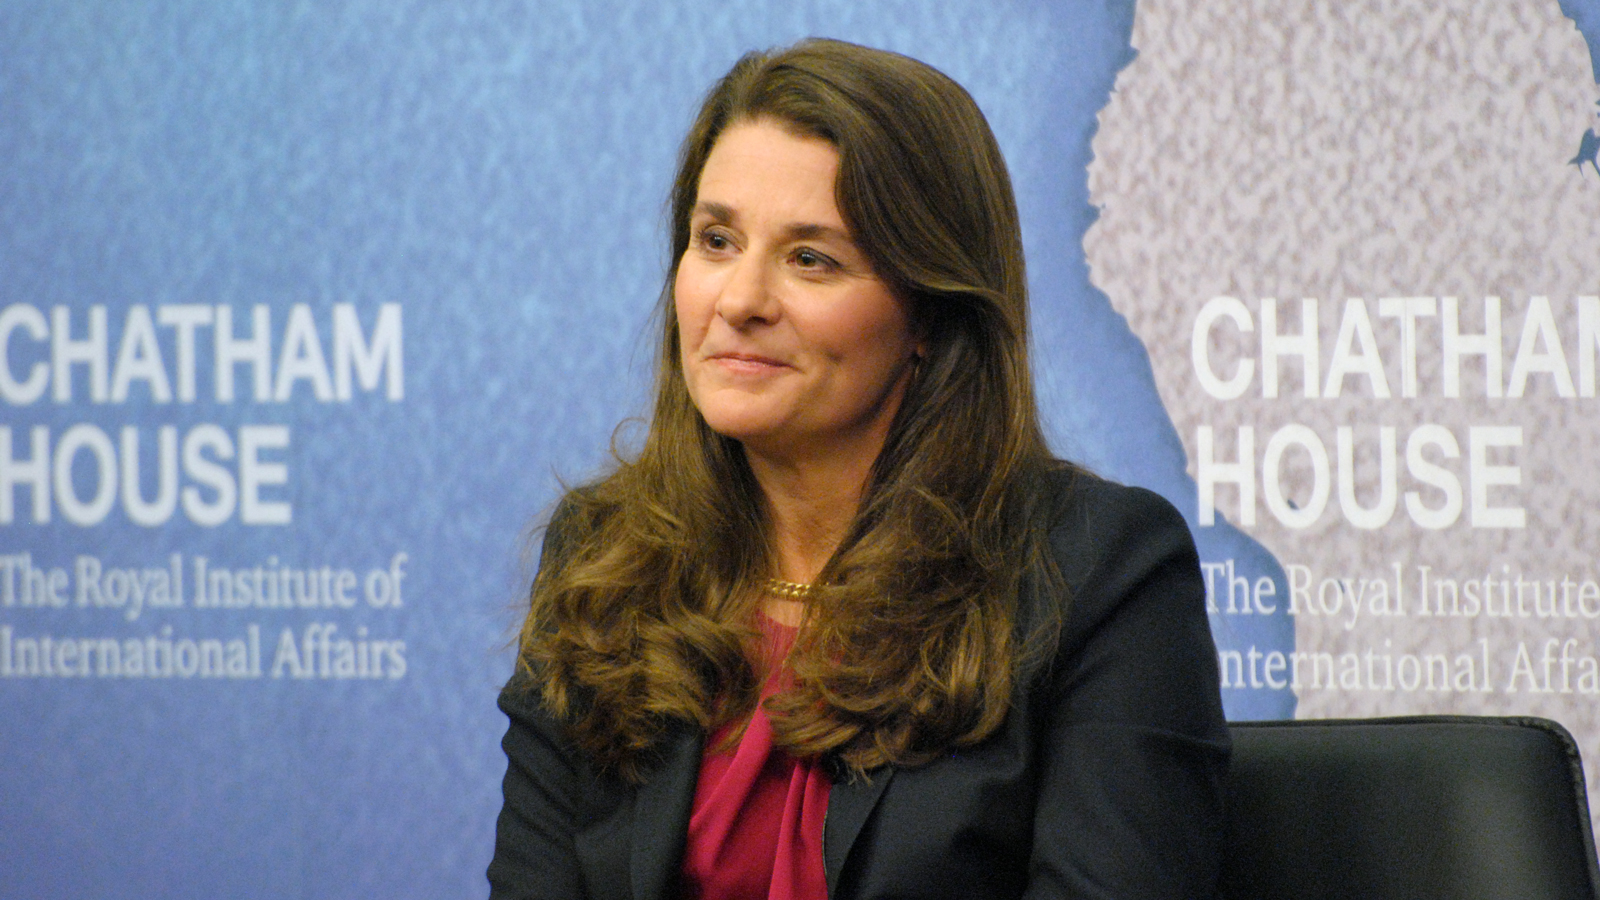 Melinda Gates I Spent My Career In >> How Melinda Gates Became The Woman She Is Today